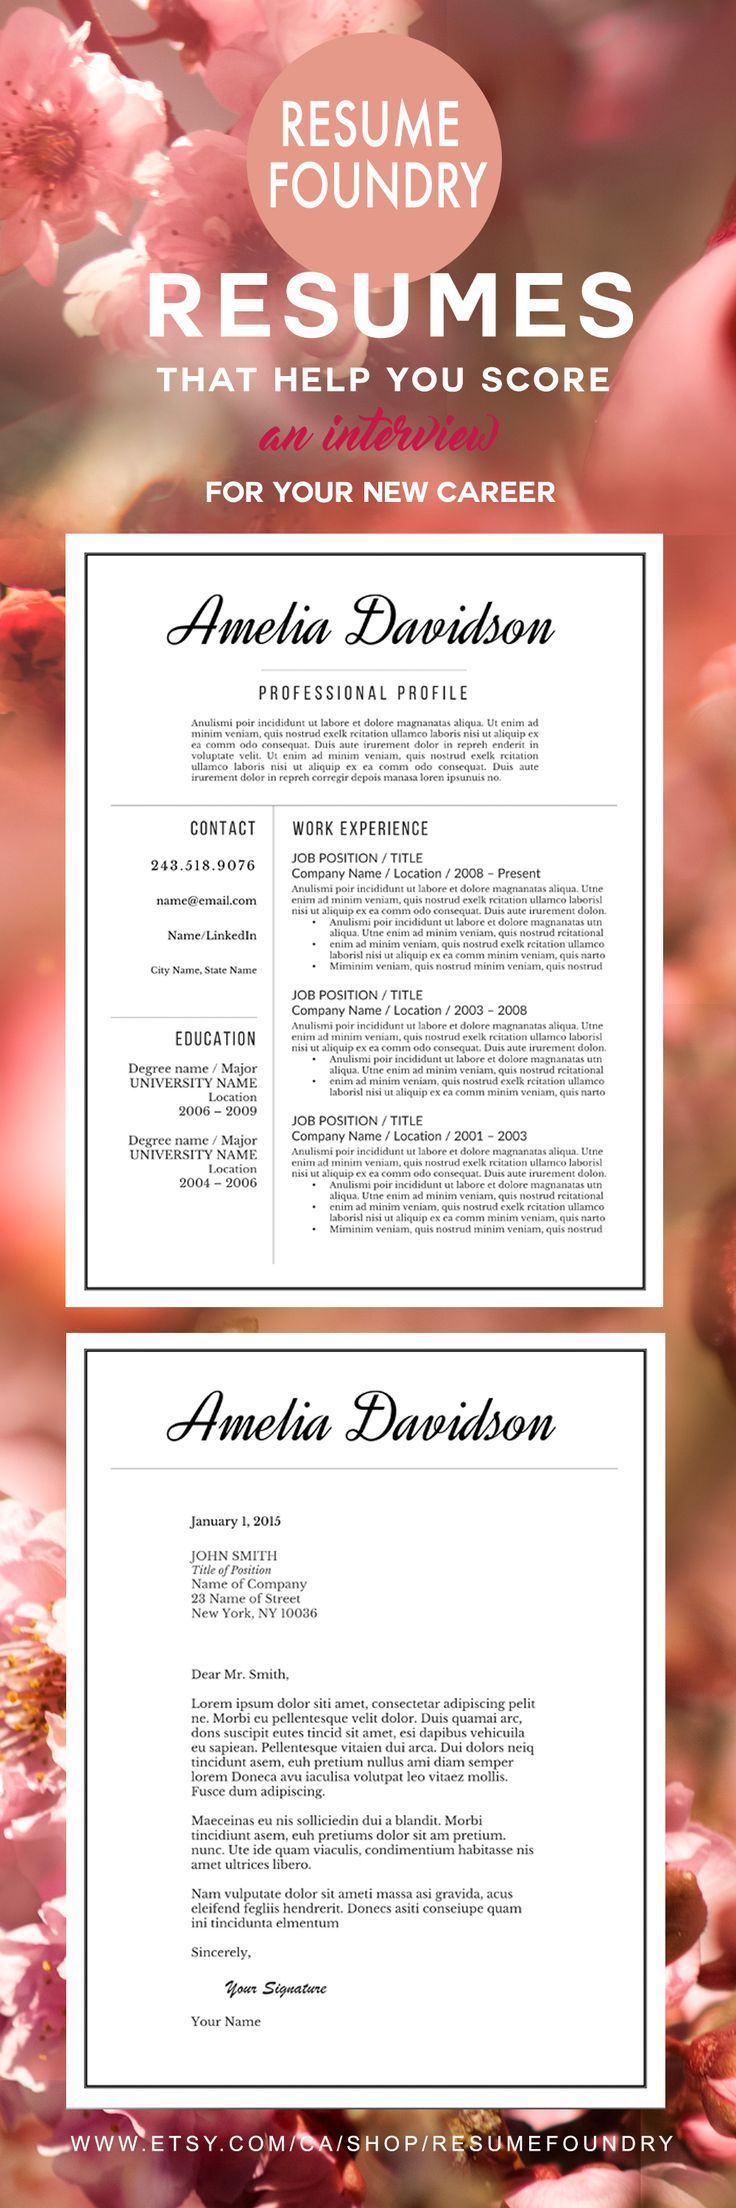 Beautiful resume template from Resume Foundry | computer stuff ...